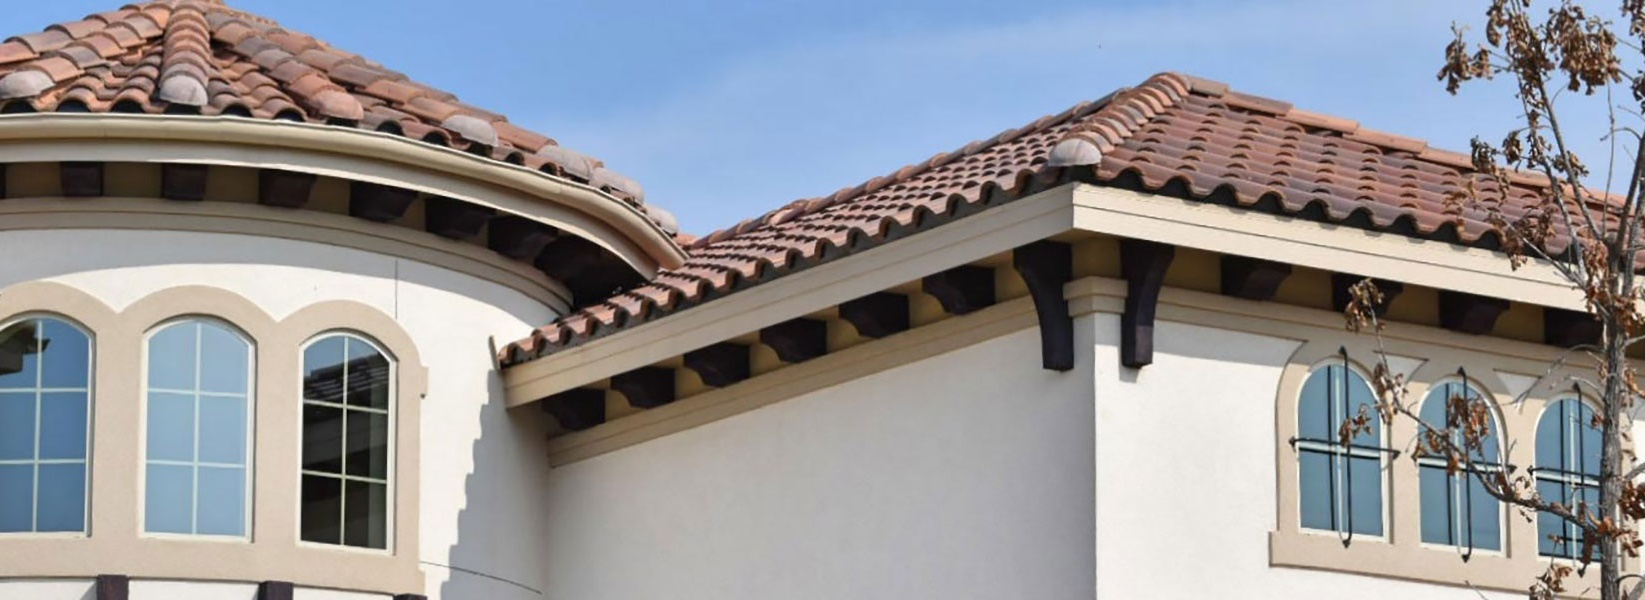 Tile Roofing Restoration